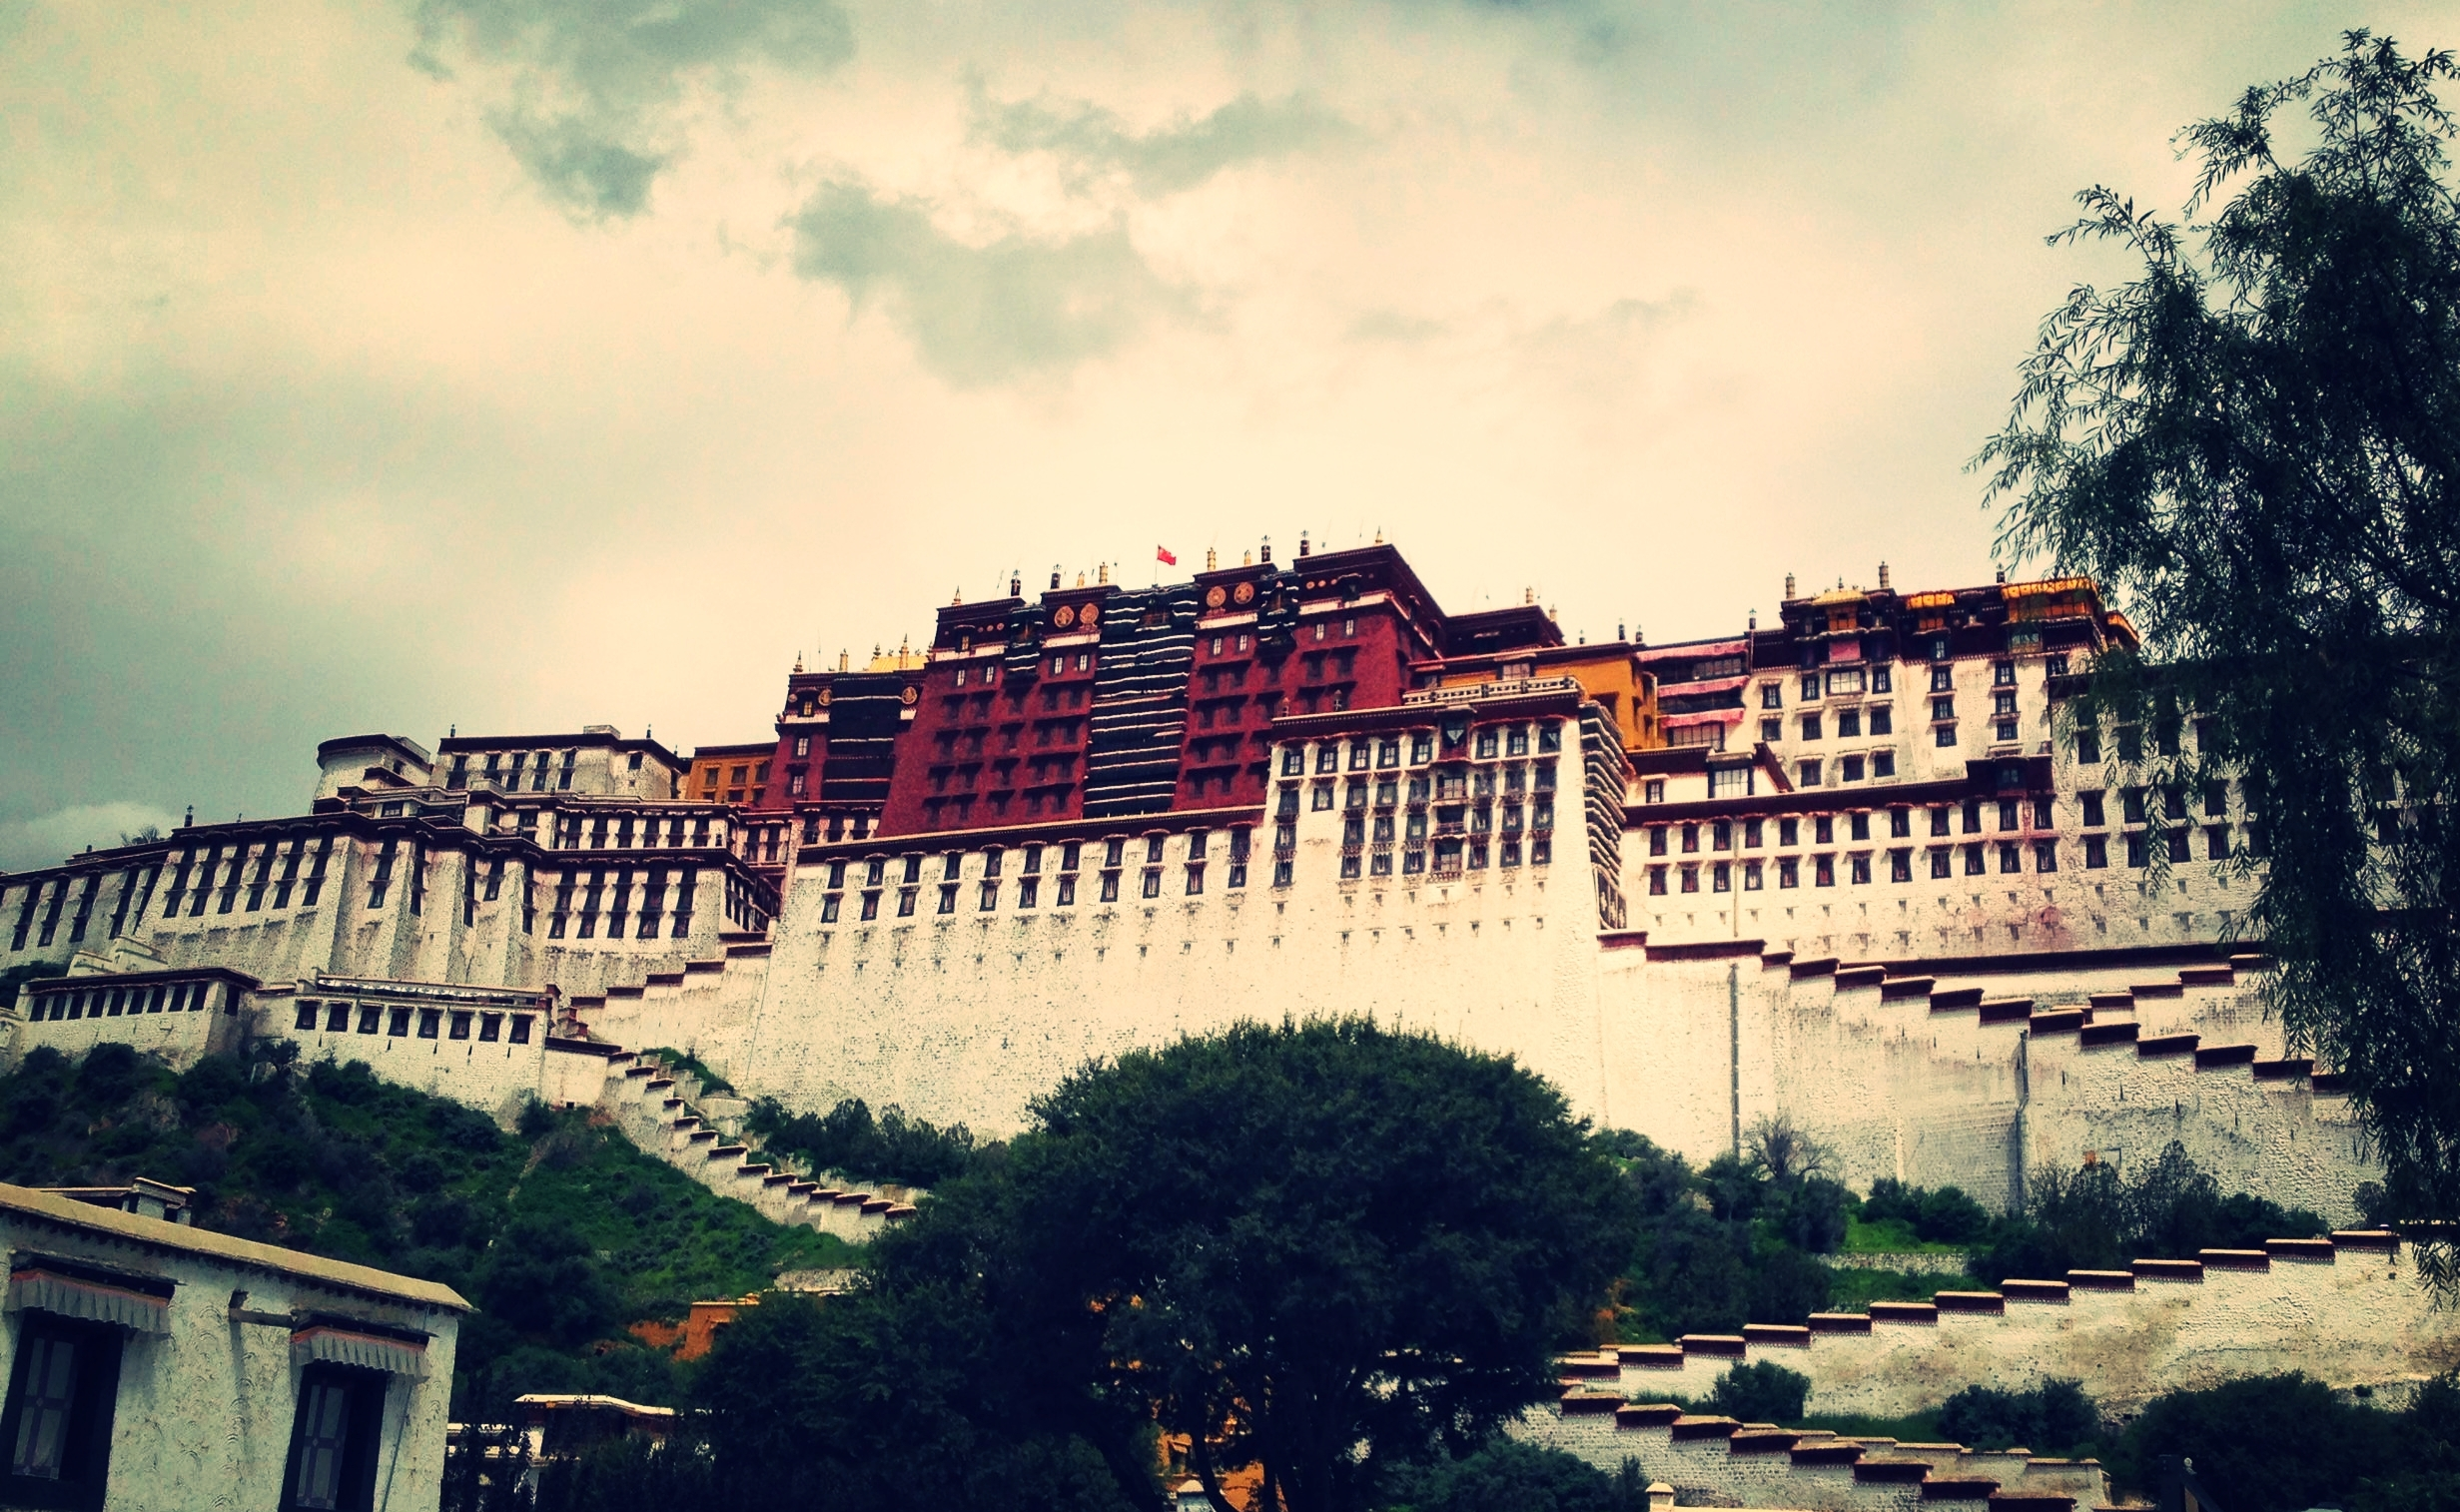 Image of the Potala Palace in Lhasa, Tibet, from Priestess Yeshe's pilgrimage there in 2014.